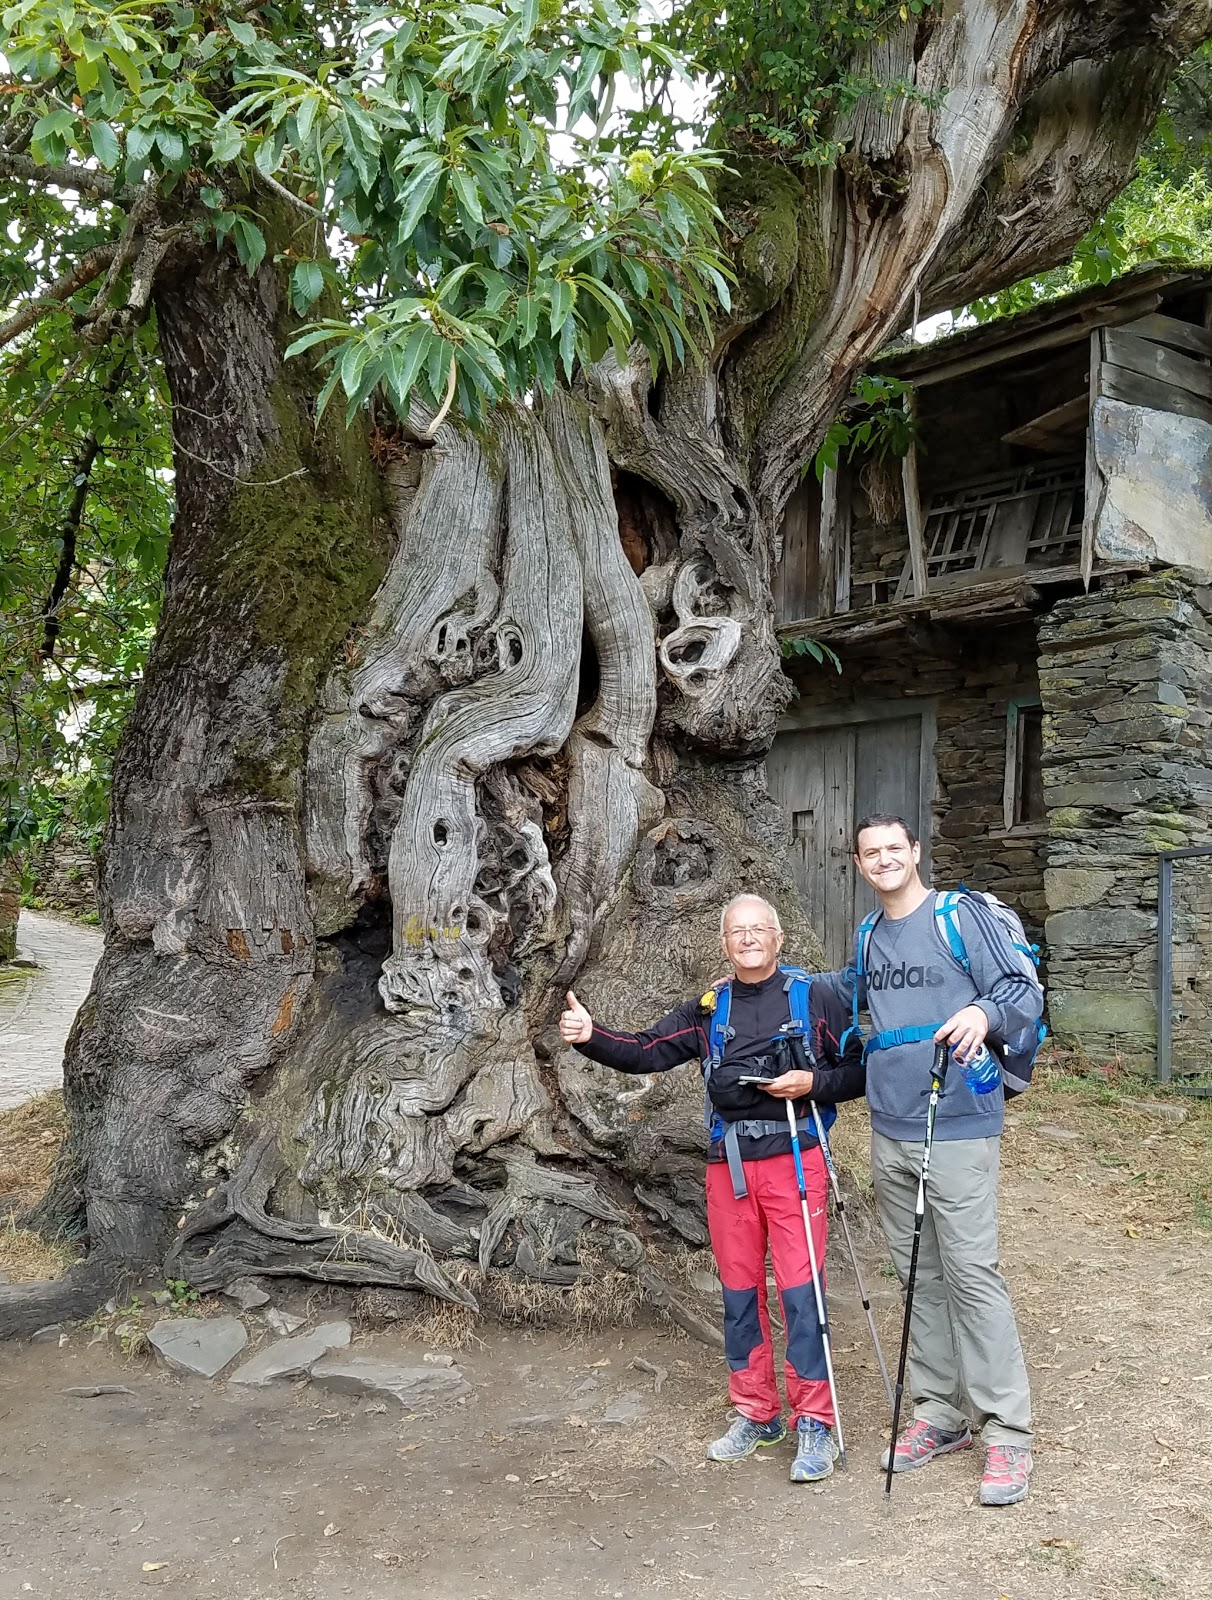 Standing in front of a 900-year-old Cypress, my friends Julian from Seville whom I would meet up with three more times before the end of my Camino, and his friend Ramo from Italy.